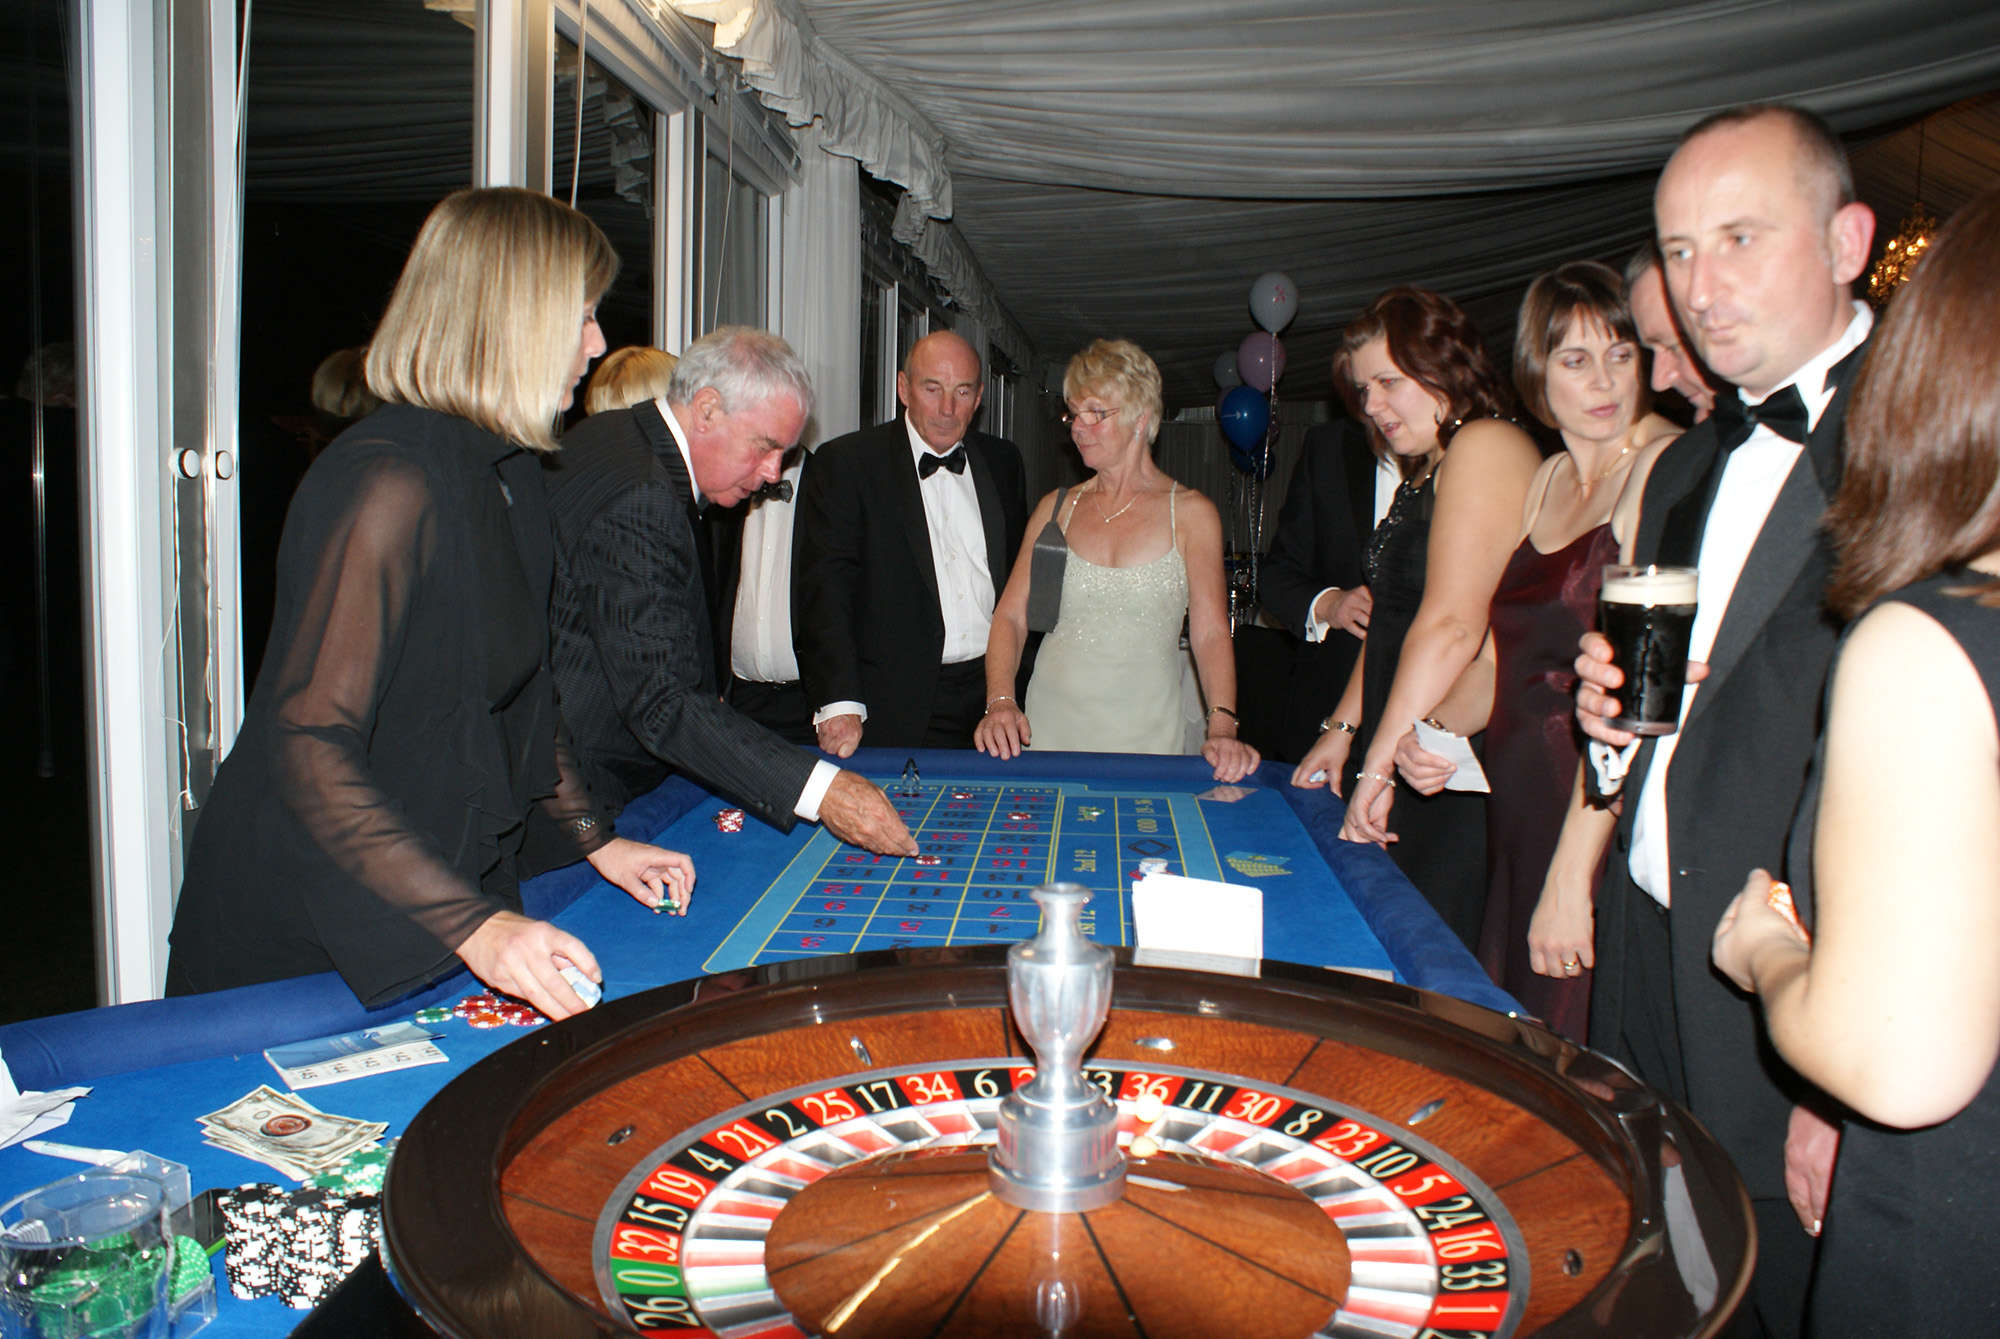 Casino hire at Boreham House in Chelmsford